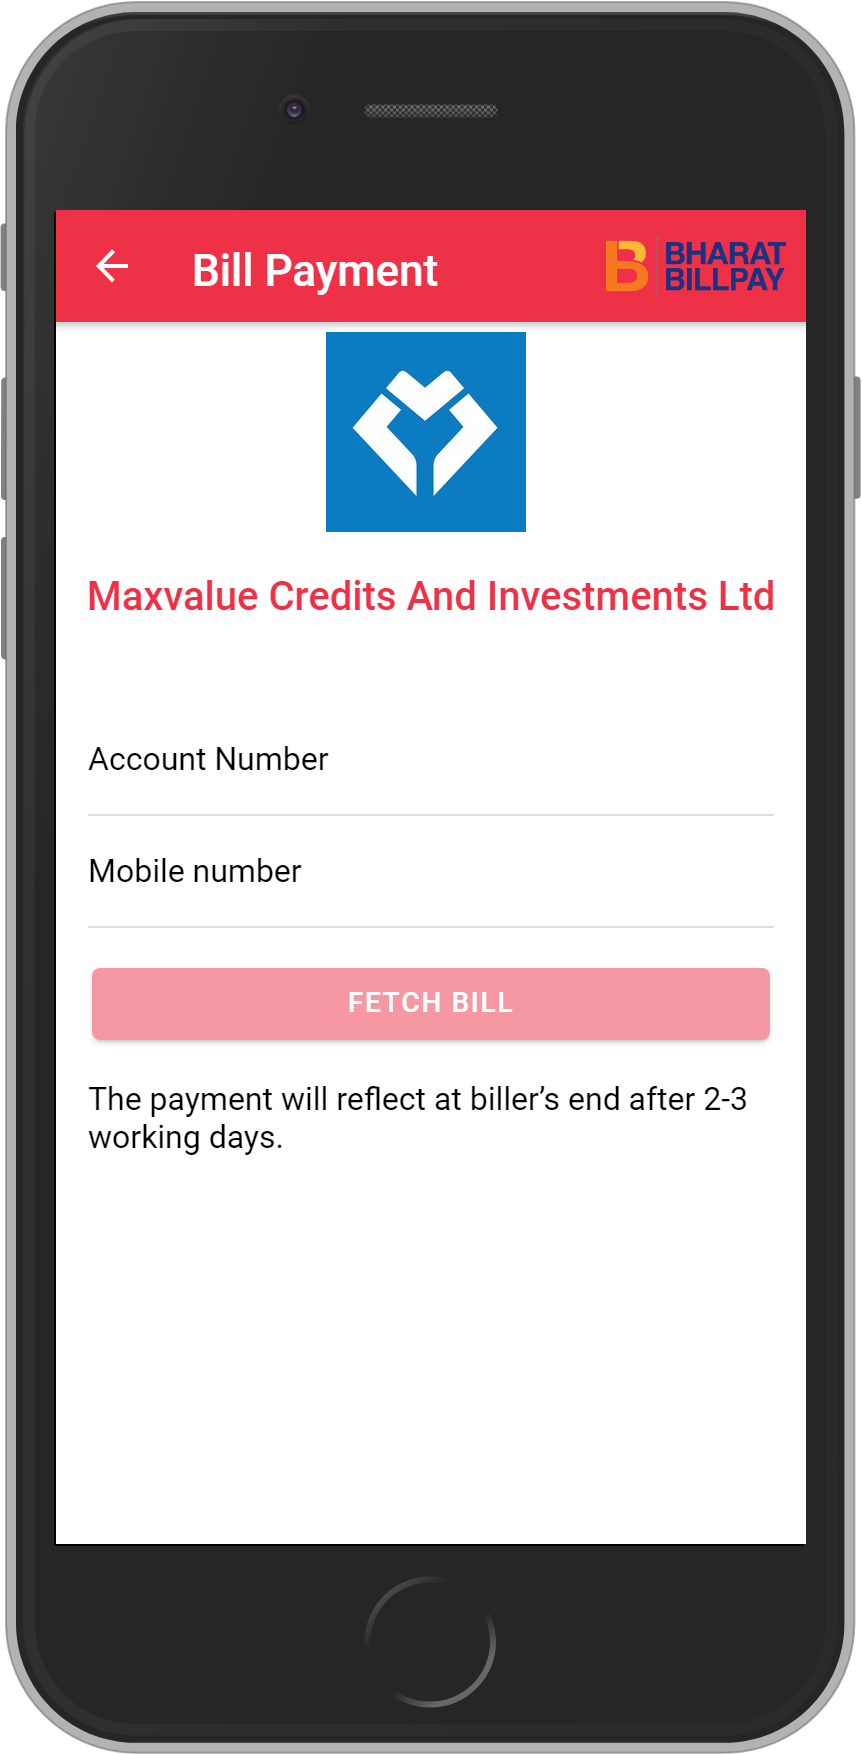 Get UNLIMITED <b>0.1%</b> CASHBACK on Maxvalue Credits And Investments Ltd  Loan Payment.